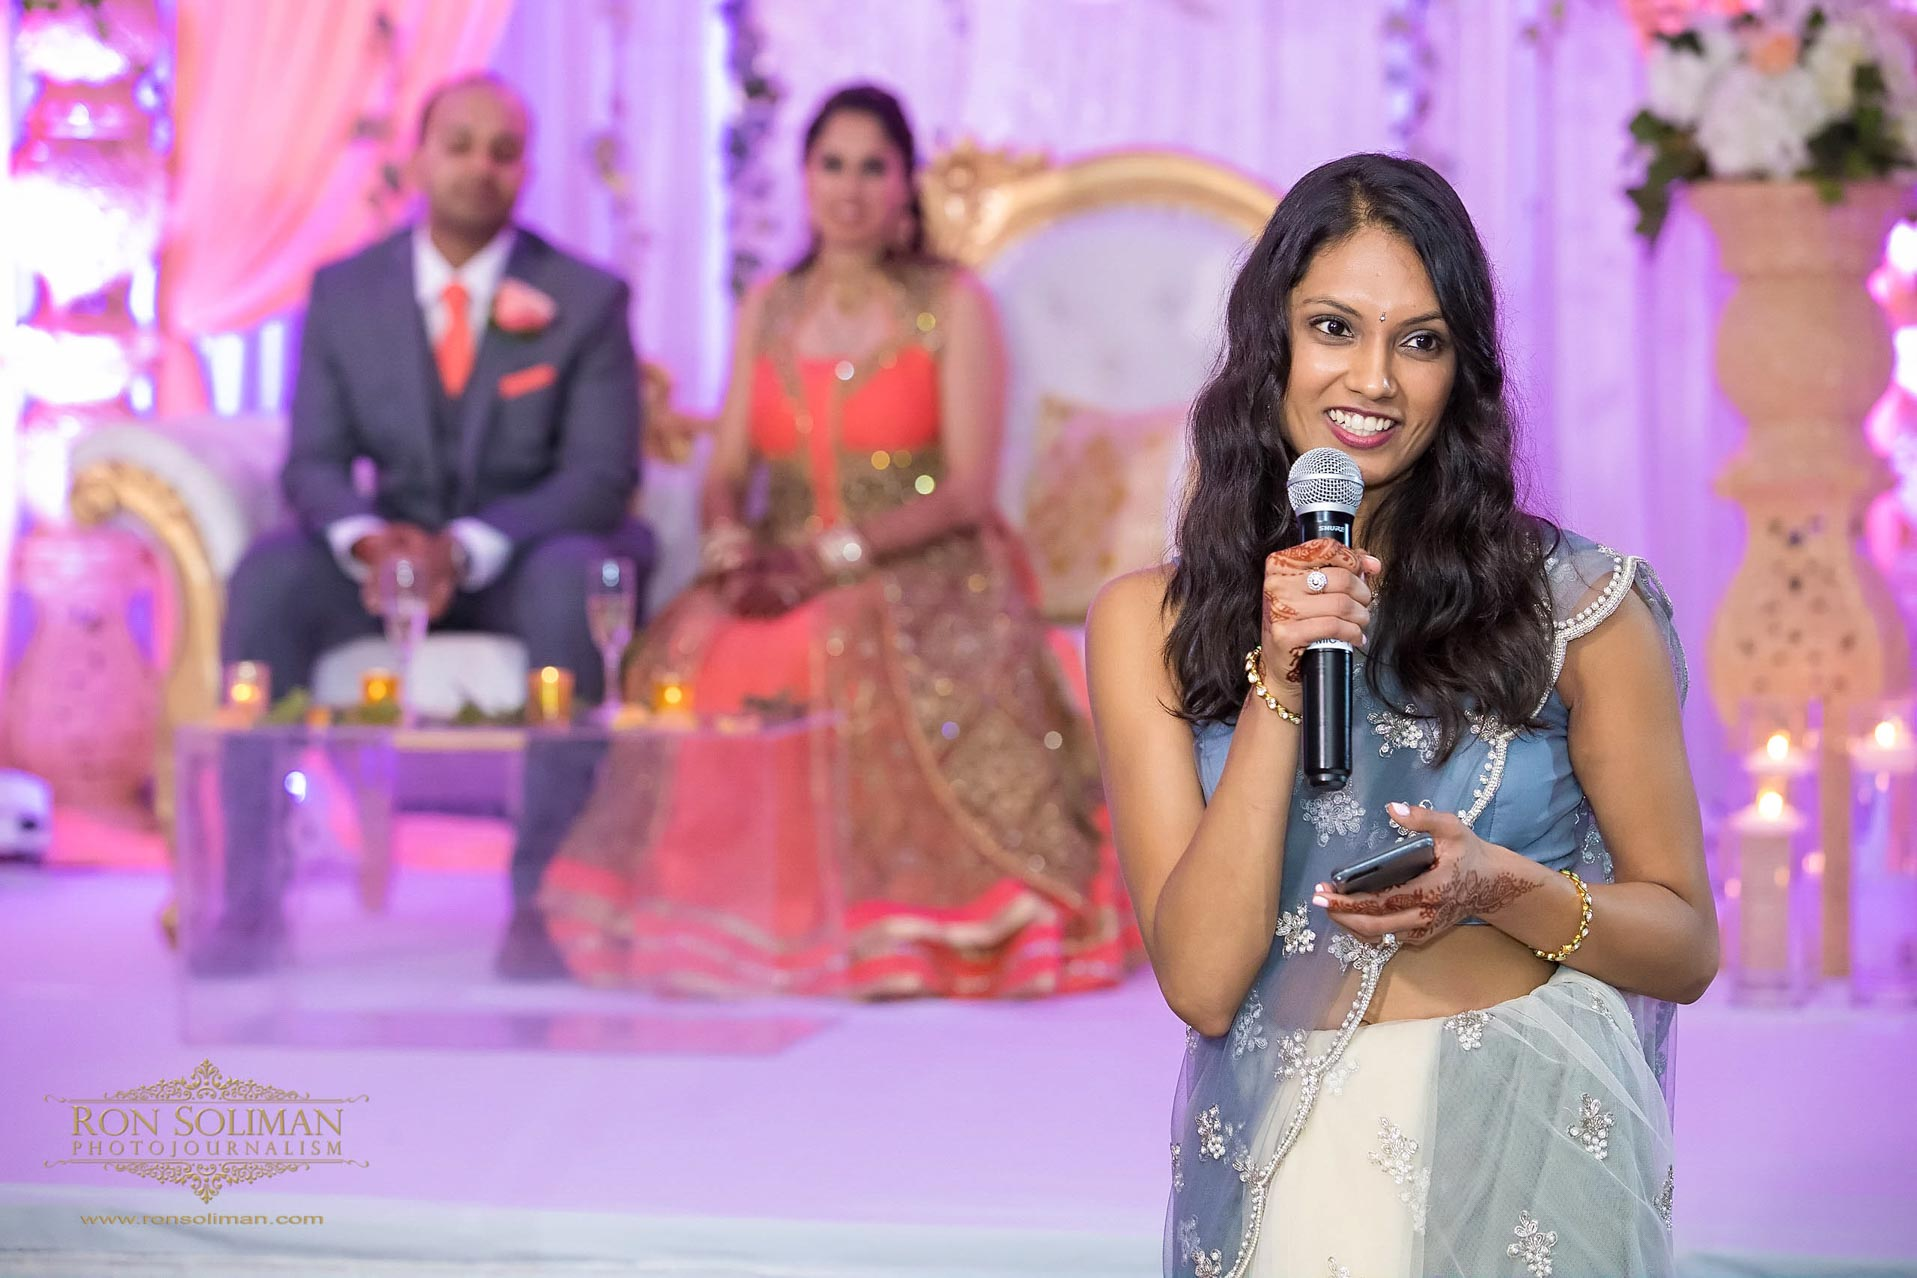 Sheraton Parsippany Indian Wedding SP 040